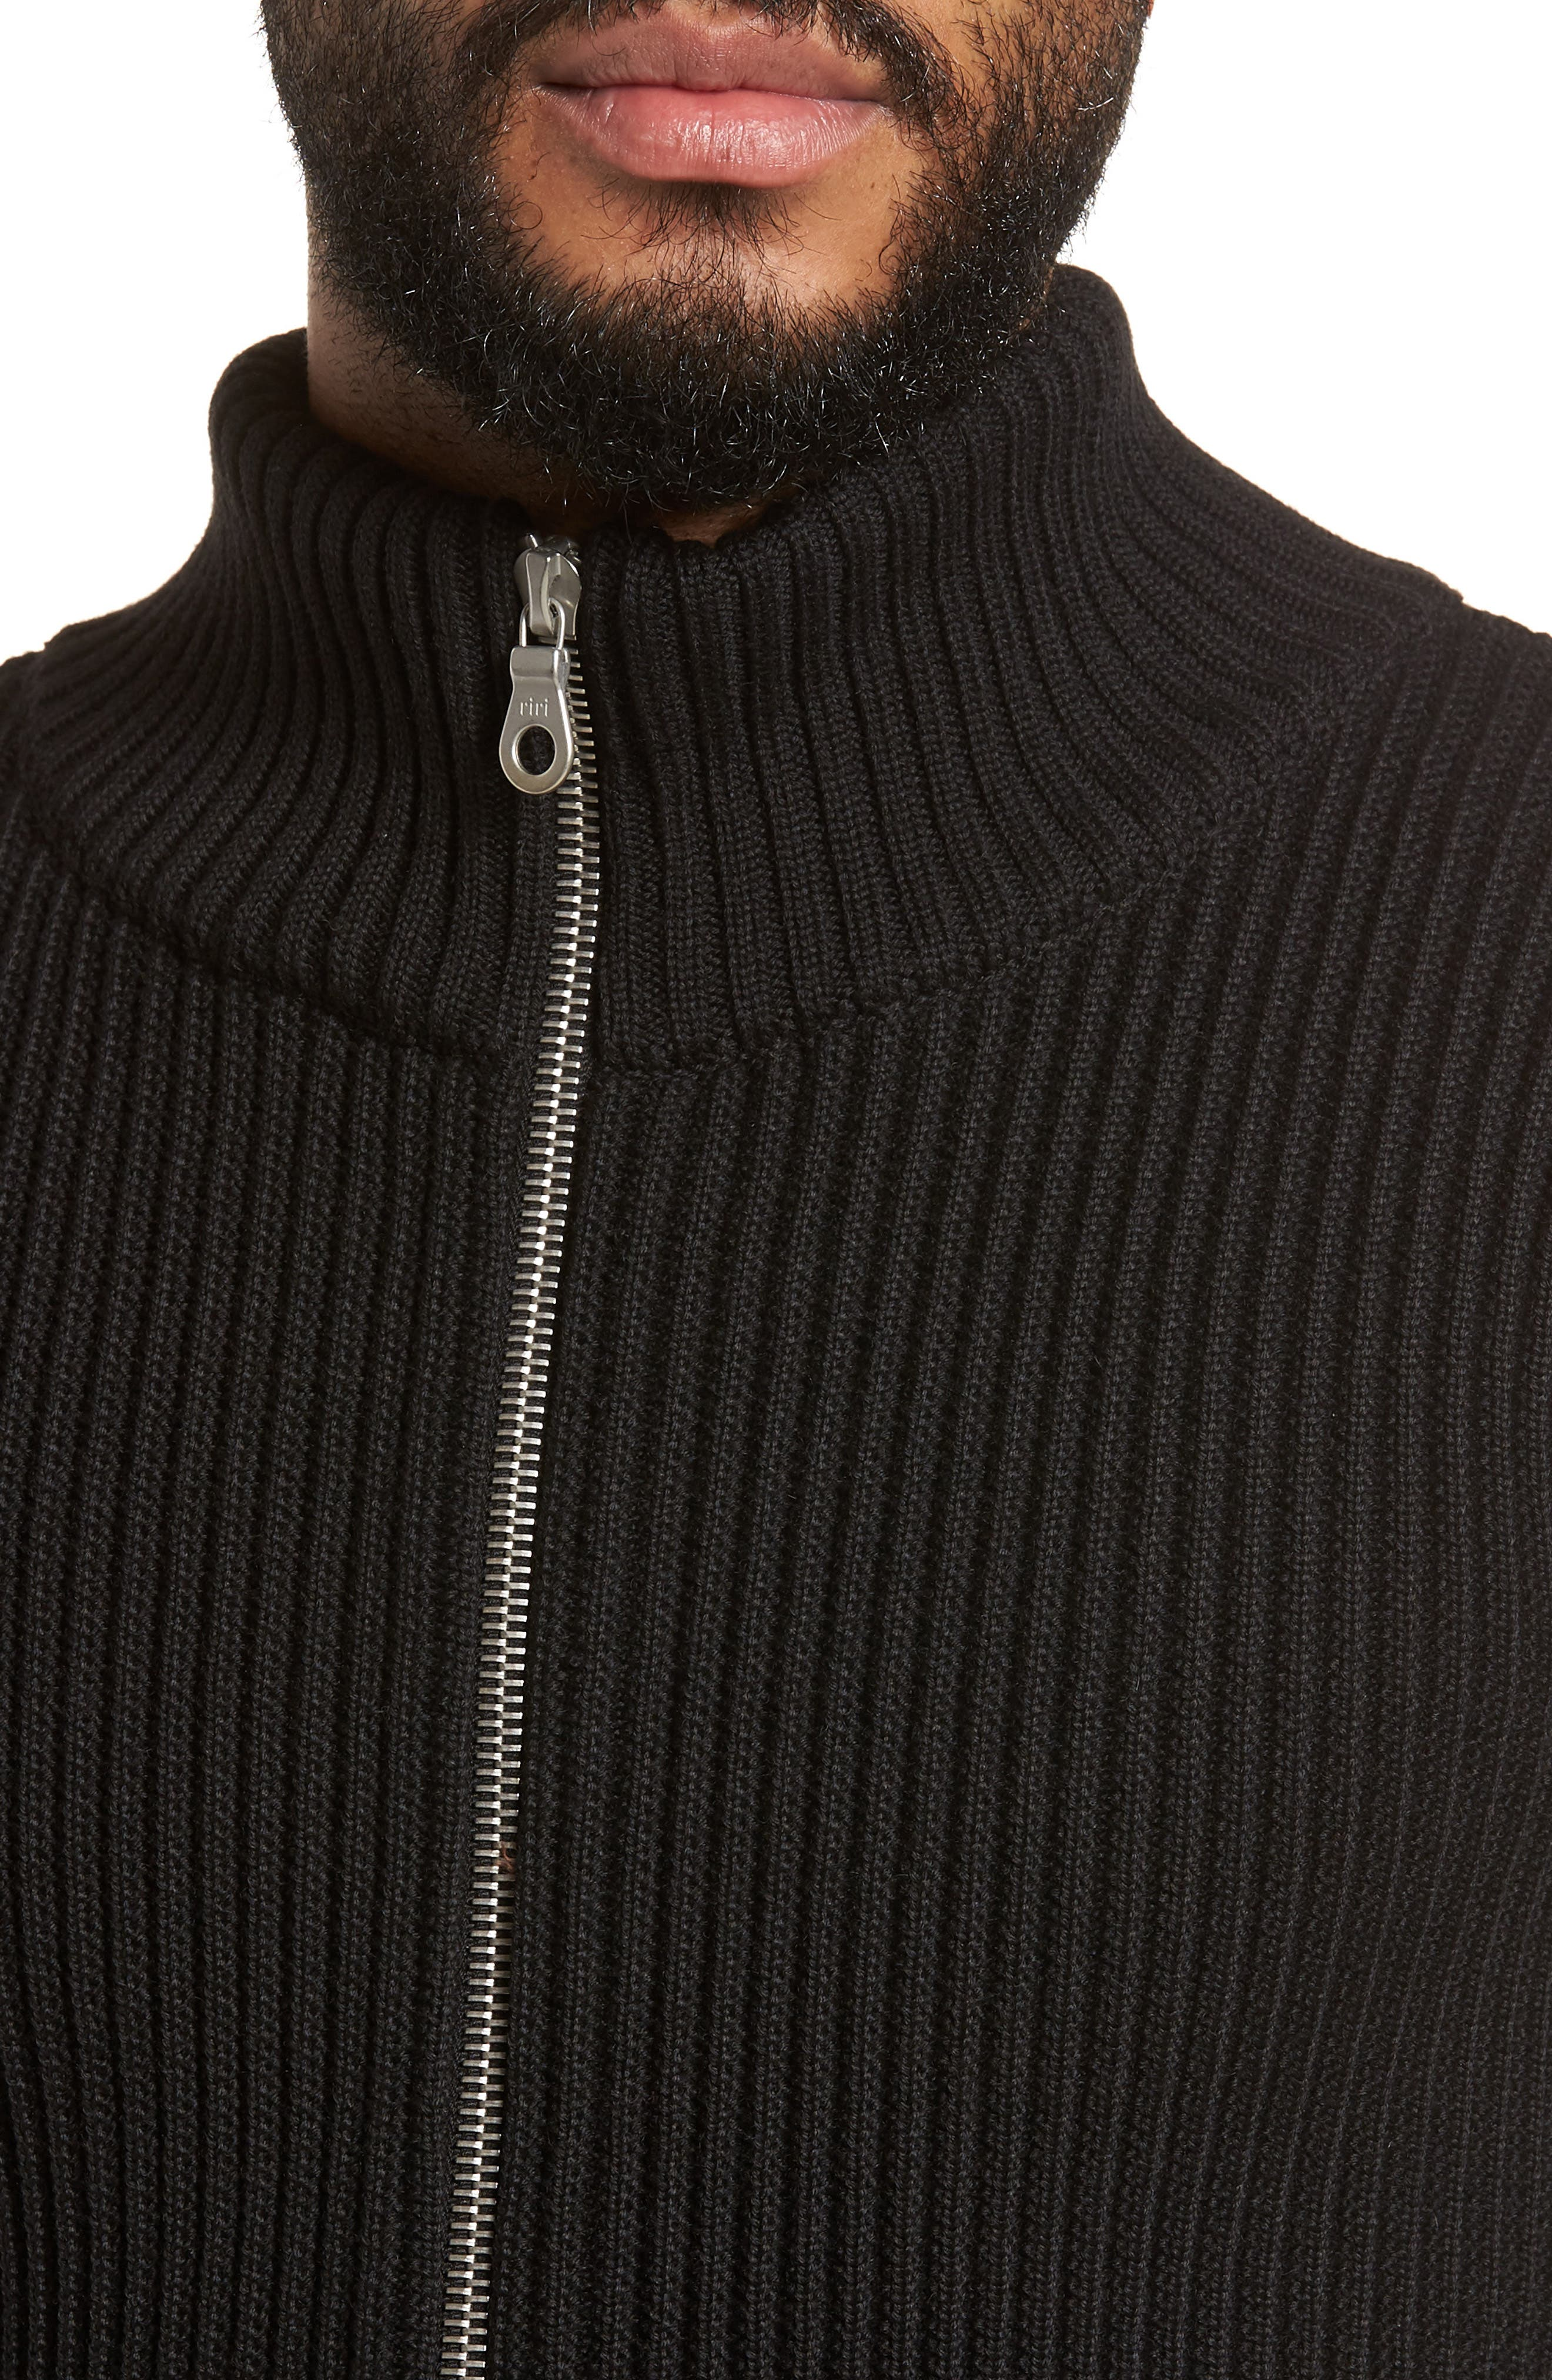 S.N.S. HERNING,                             Fang Wool Sweater Jacket,                             Alternate thumbnail 4, color,                             001